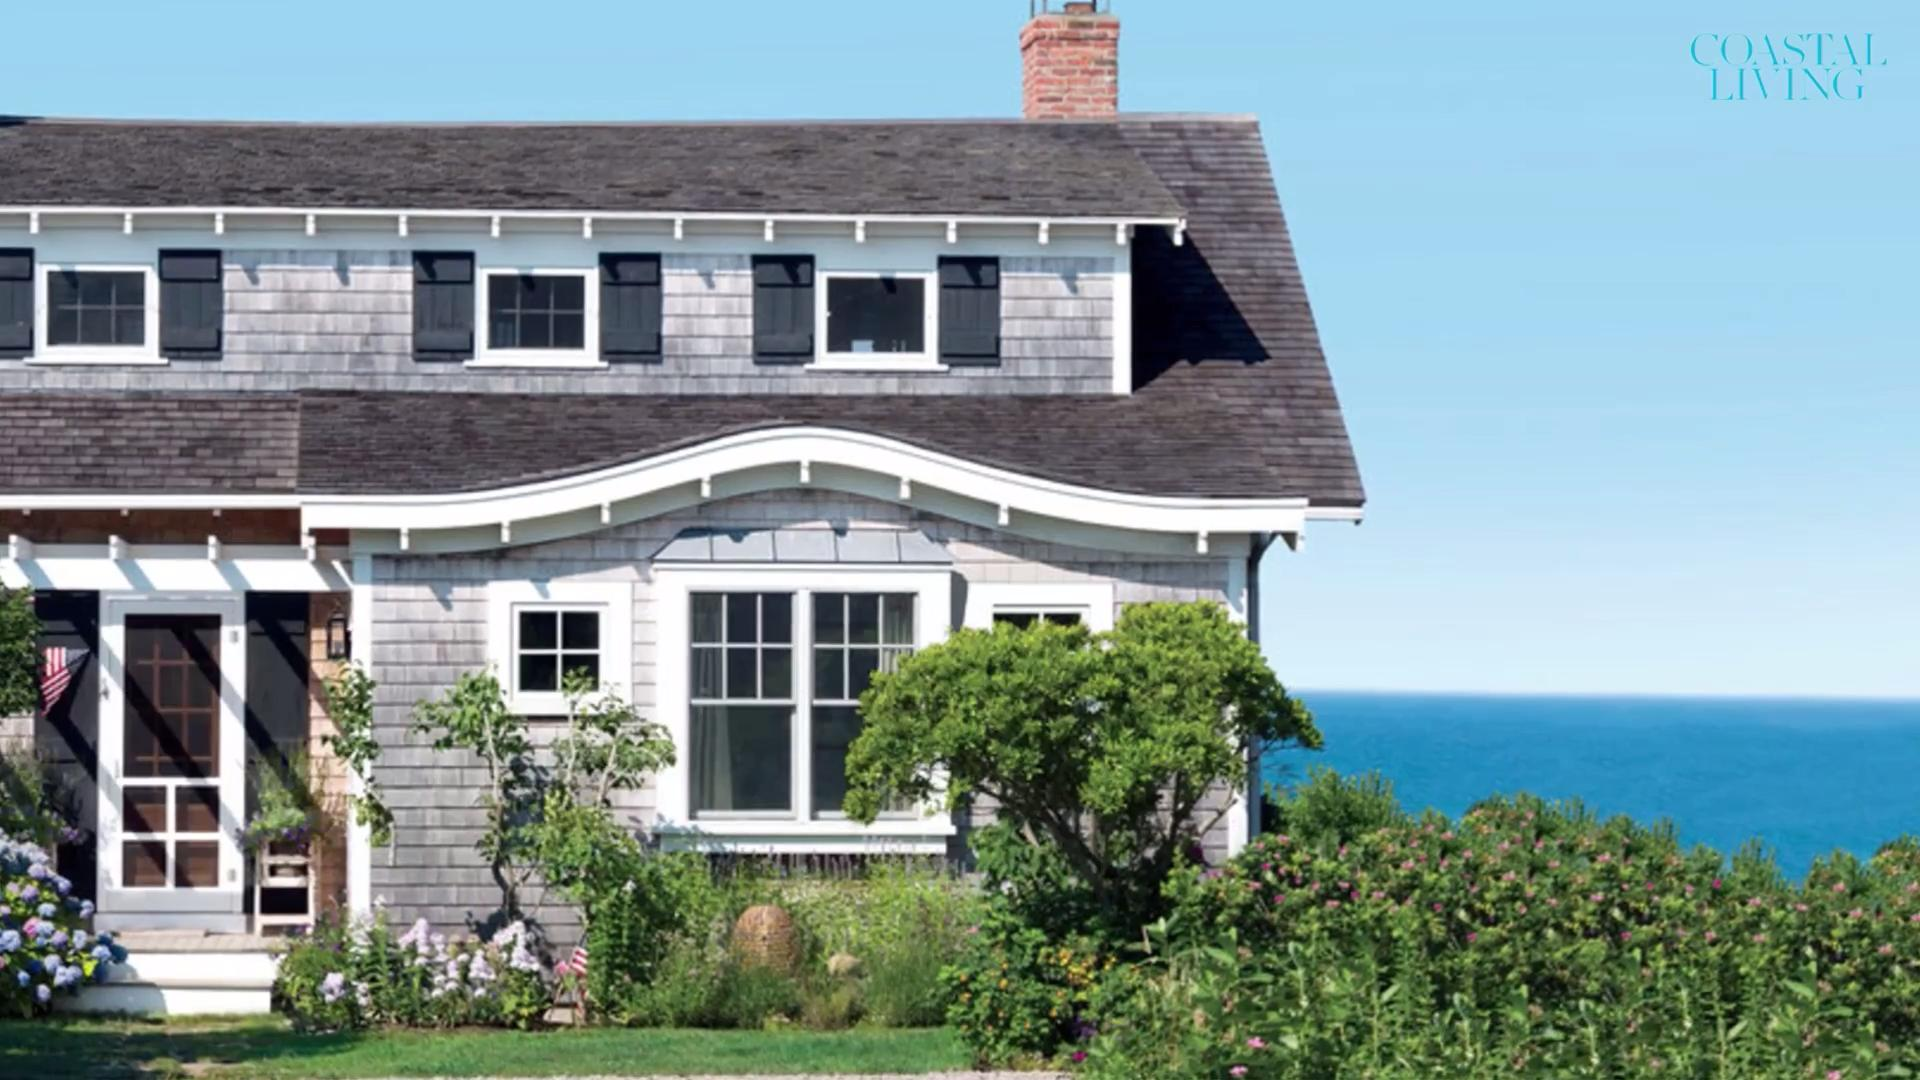 These Seaside Cottages Have Coastal Charm